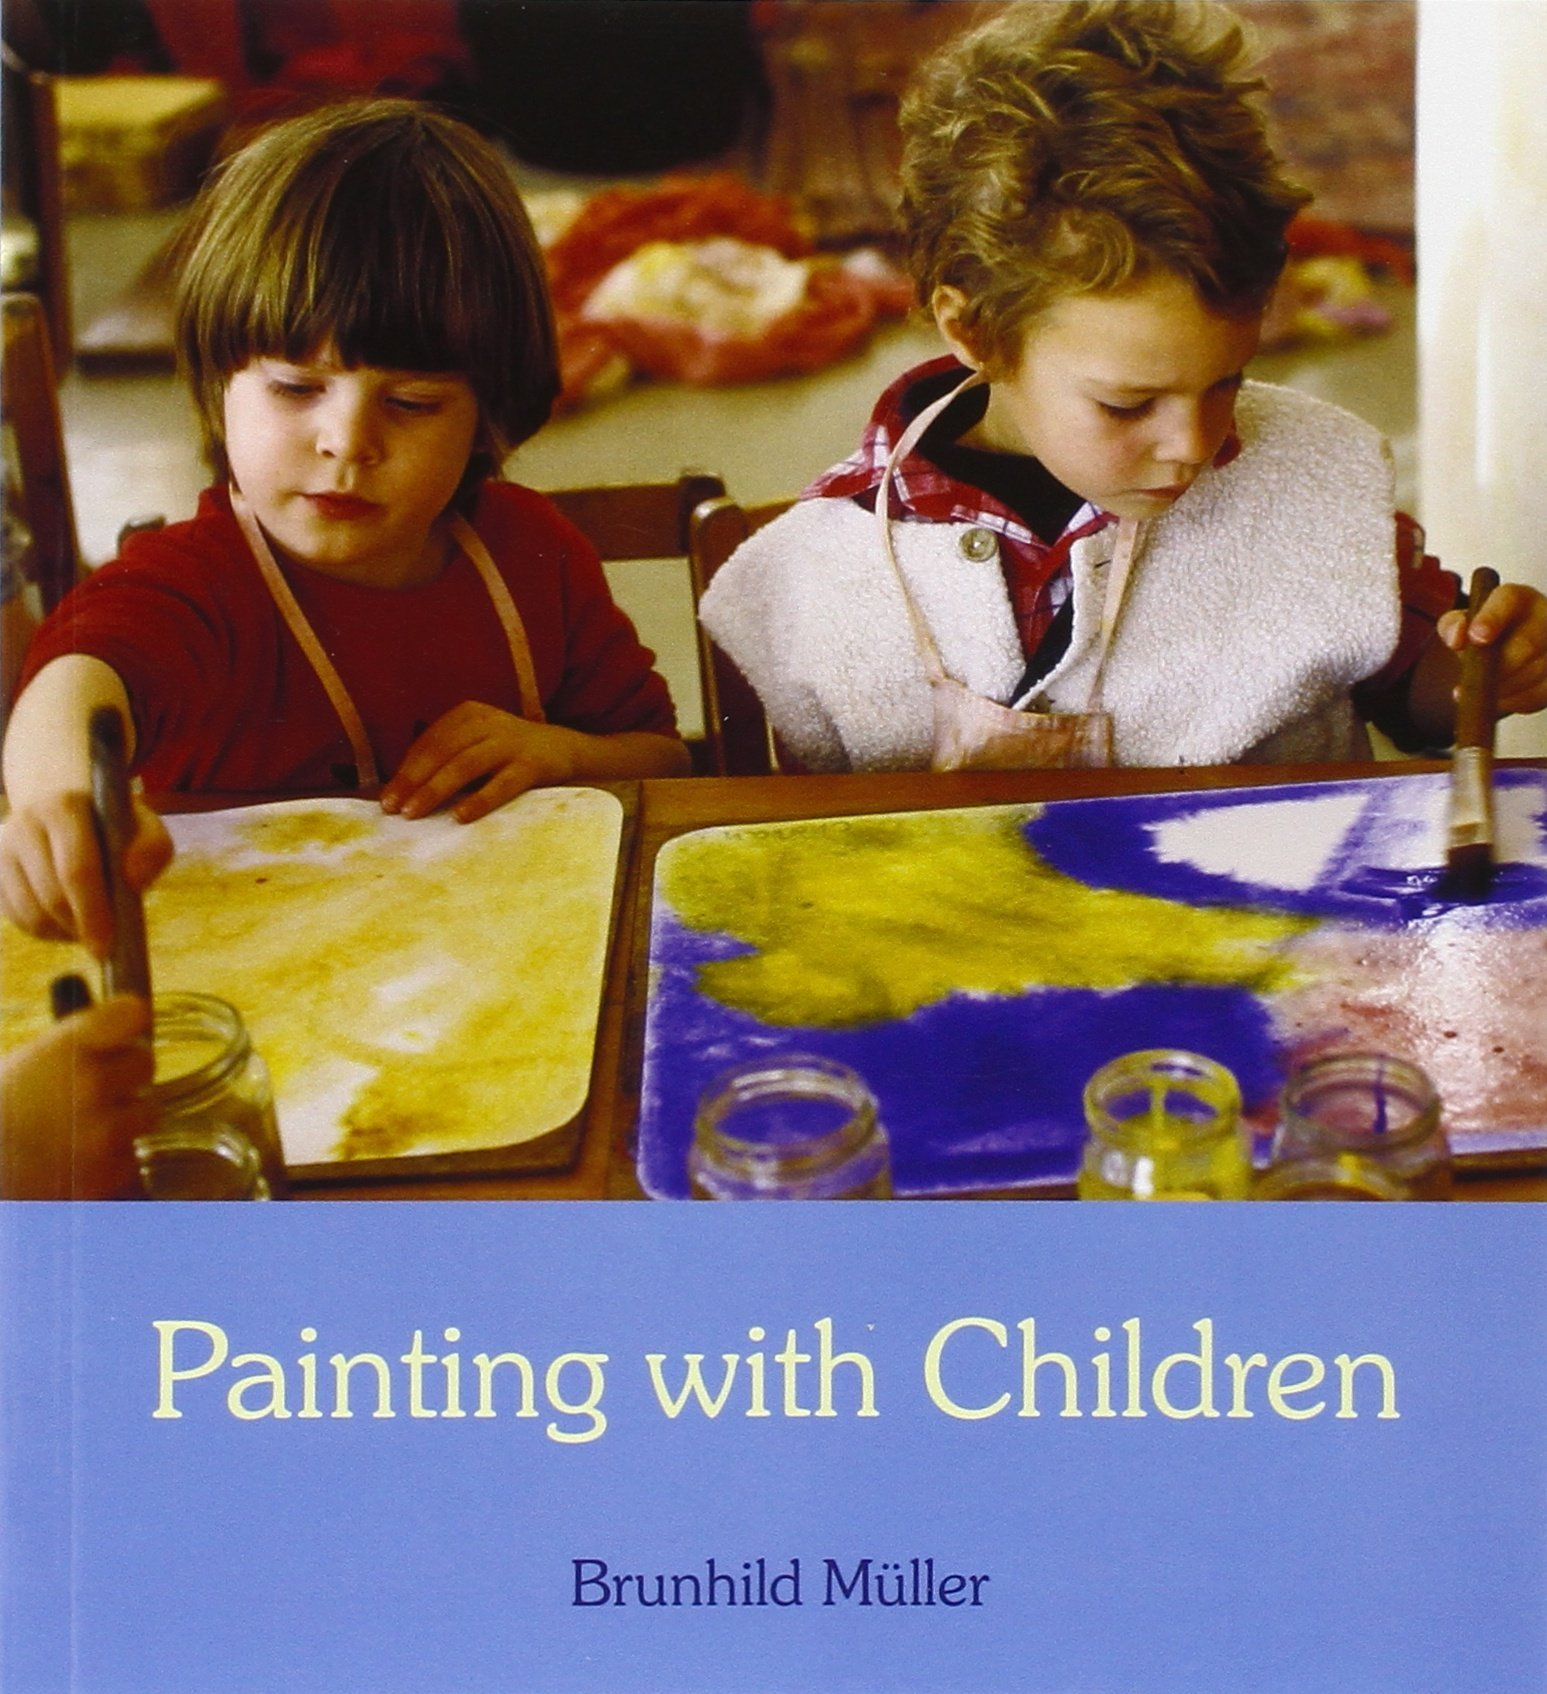 painting with children brunhild muller 9780863153662 amazoncom books - Children Painting Pictures